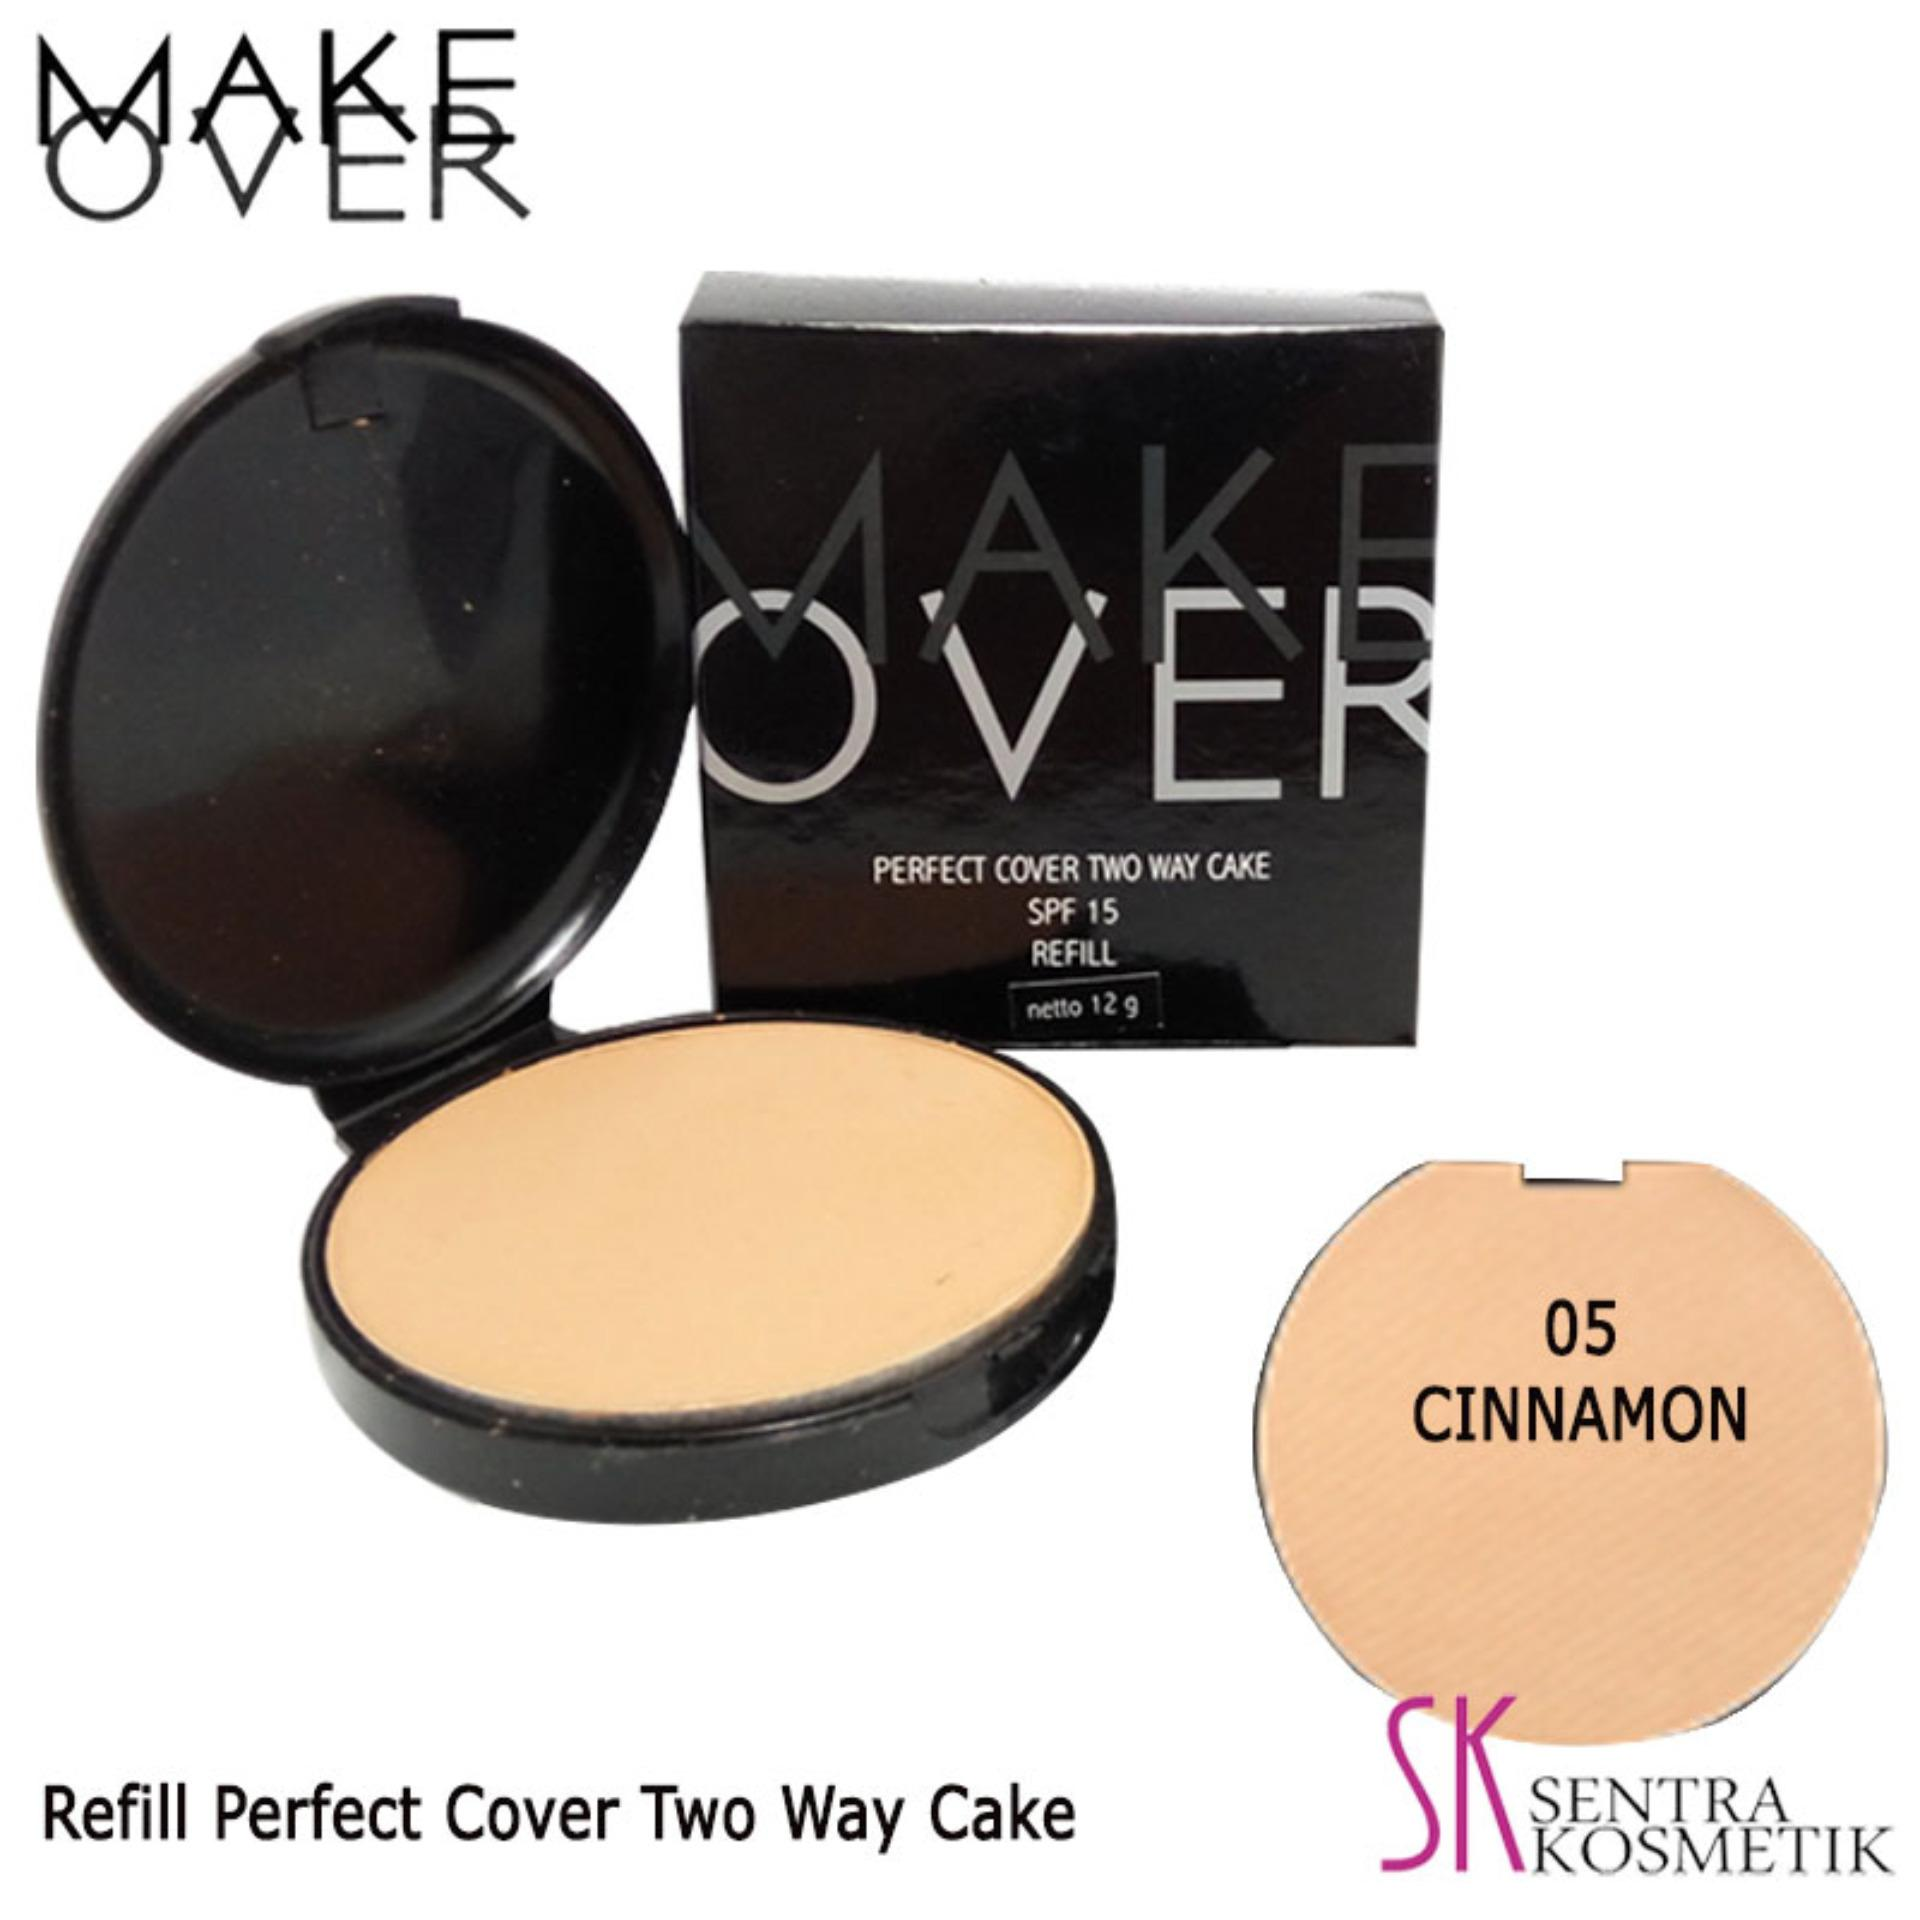 Buy Sell Cheapest His Way The Best Quality Product Deals Wardah Lightening Two Cake Light Feel Price Ever Make Over Perfect Cover Refill 05 Cinnamon